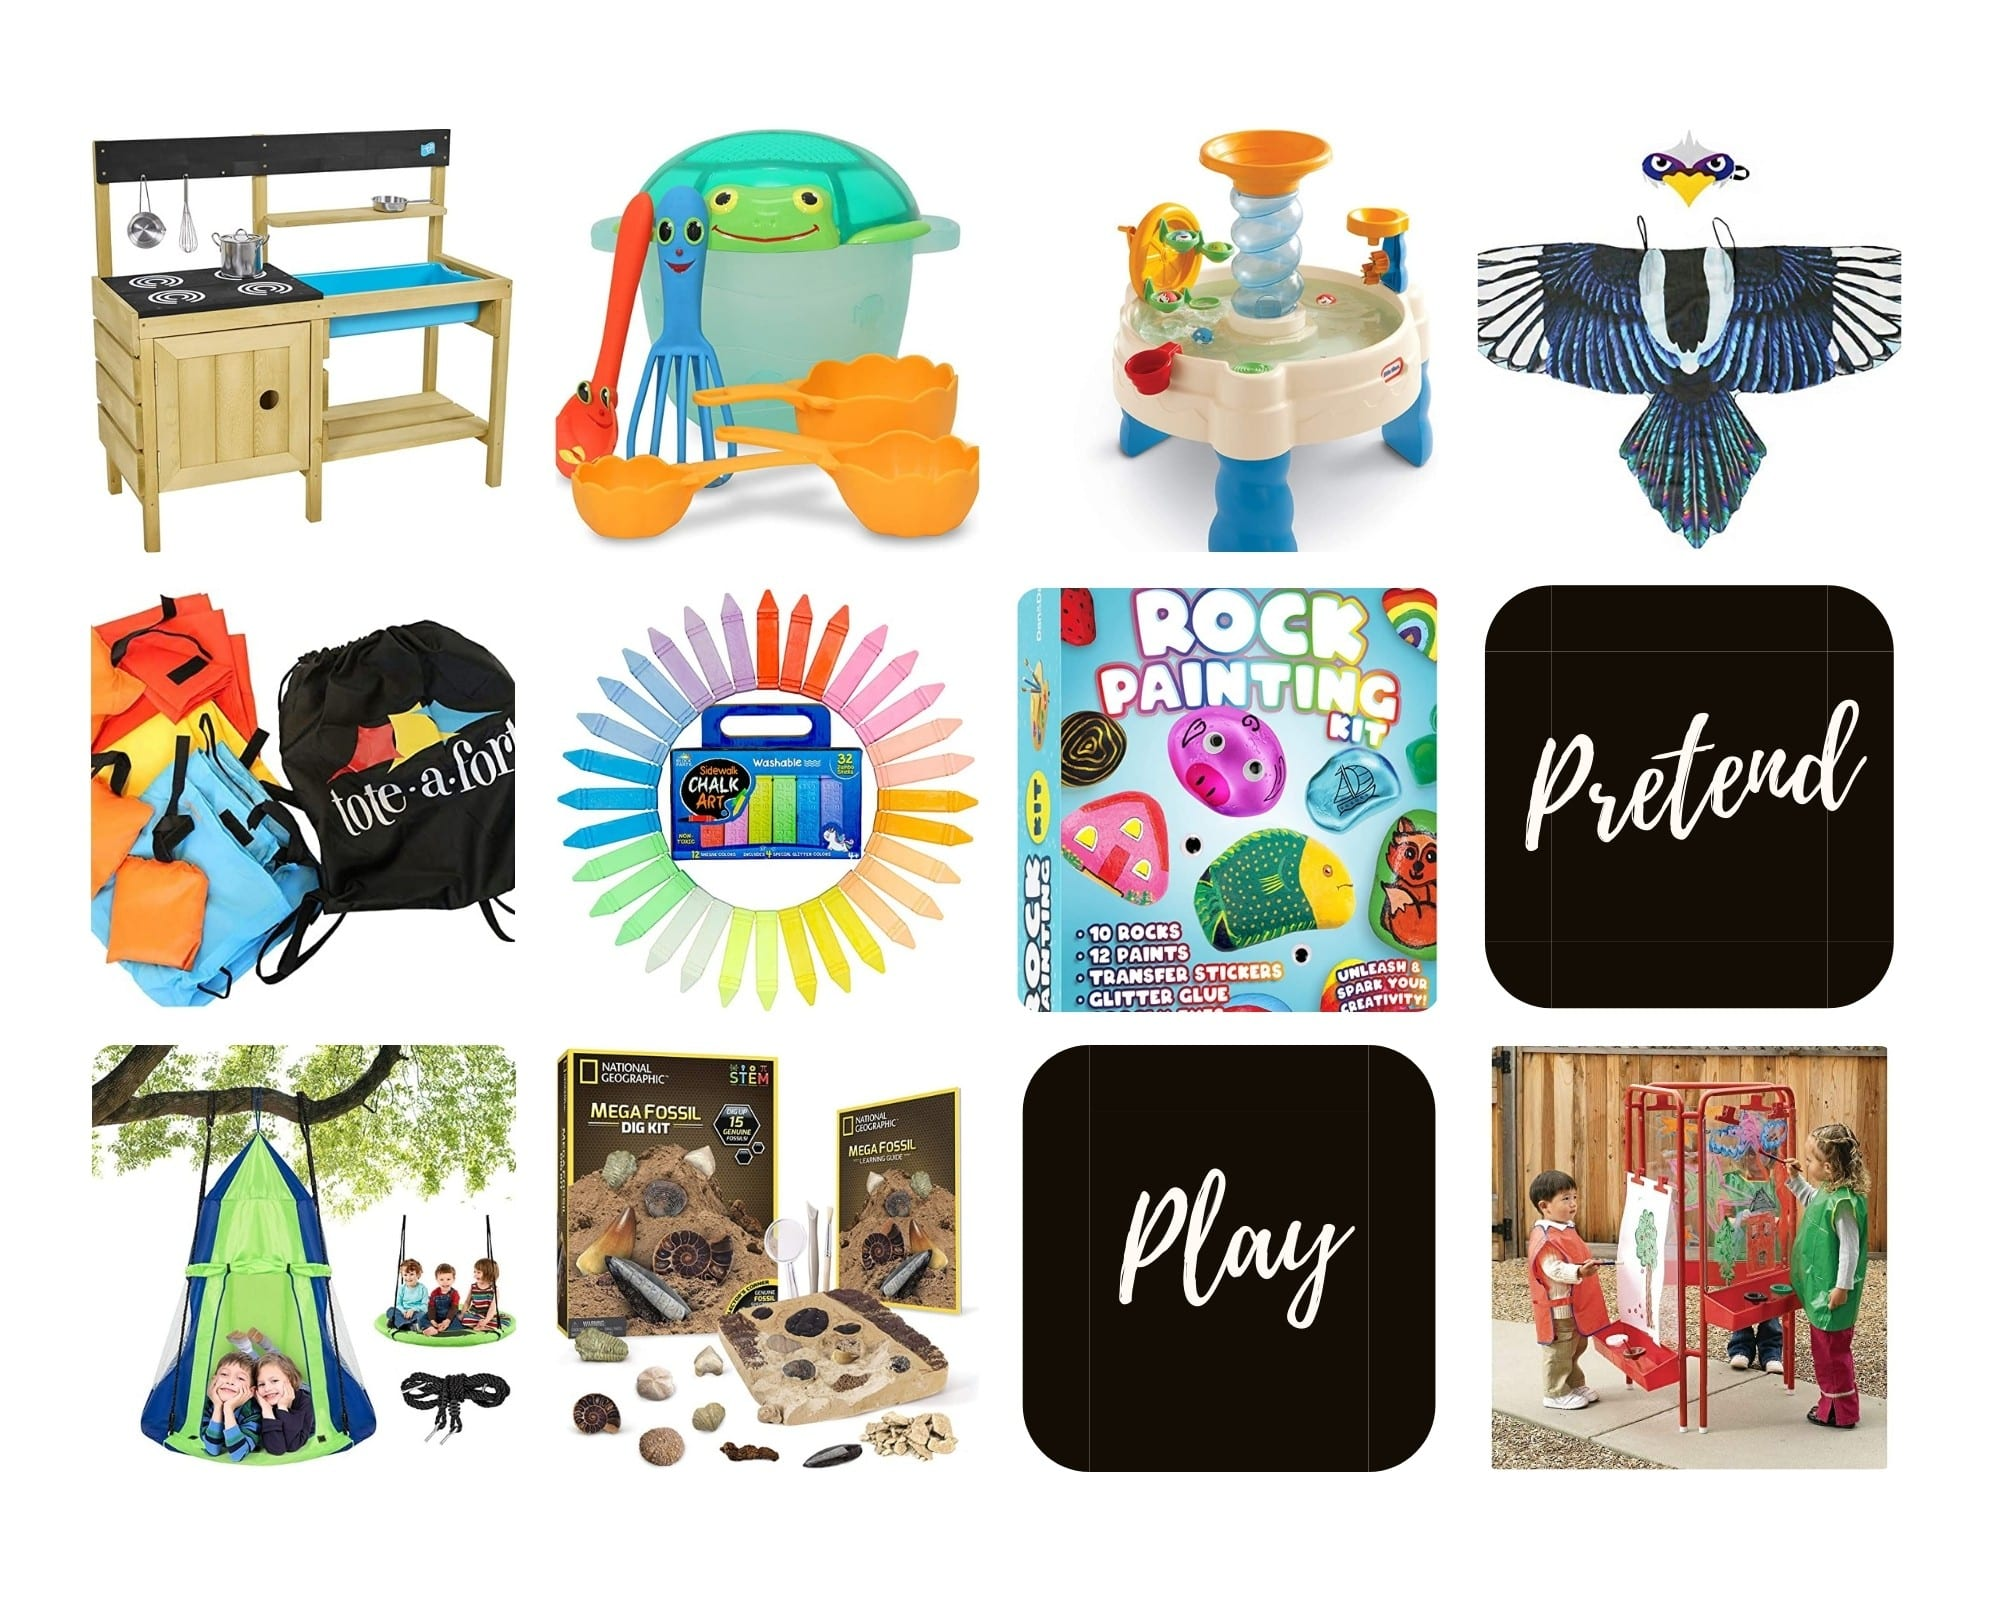 Product Images of the Top 10 Imaginative Play Gifts for Outdoorsy Kids to Follow